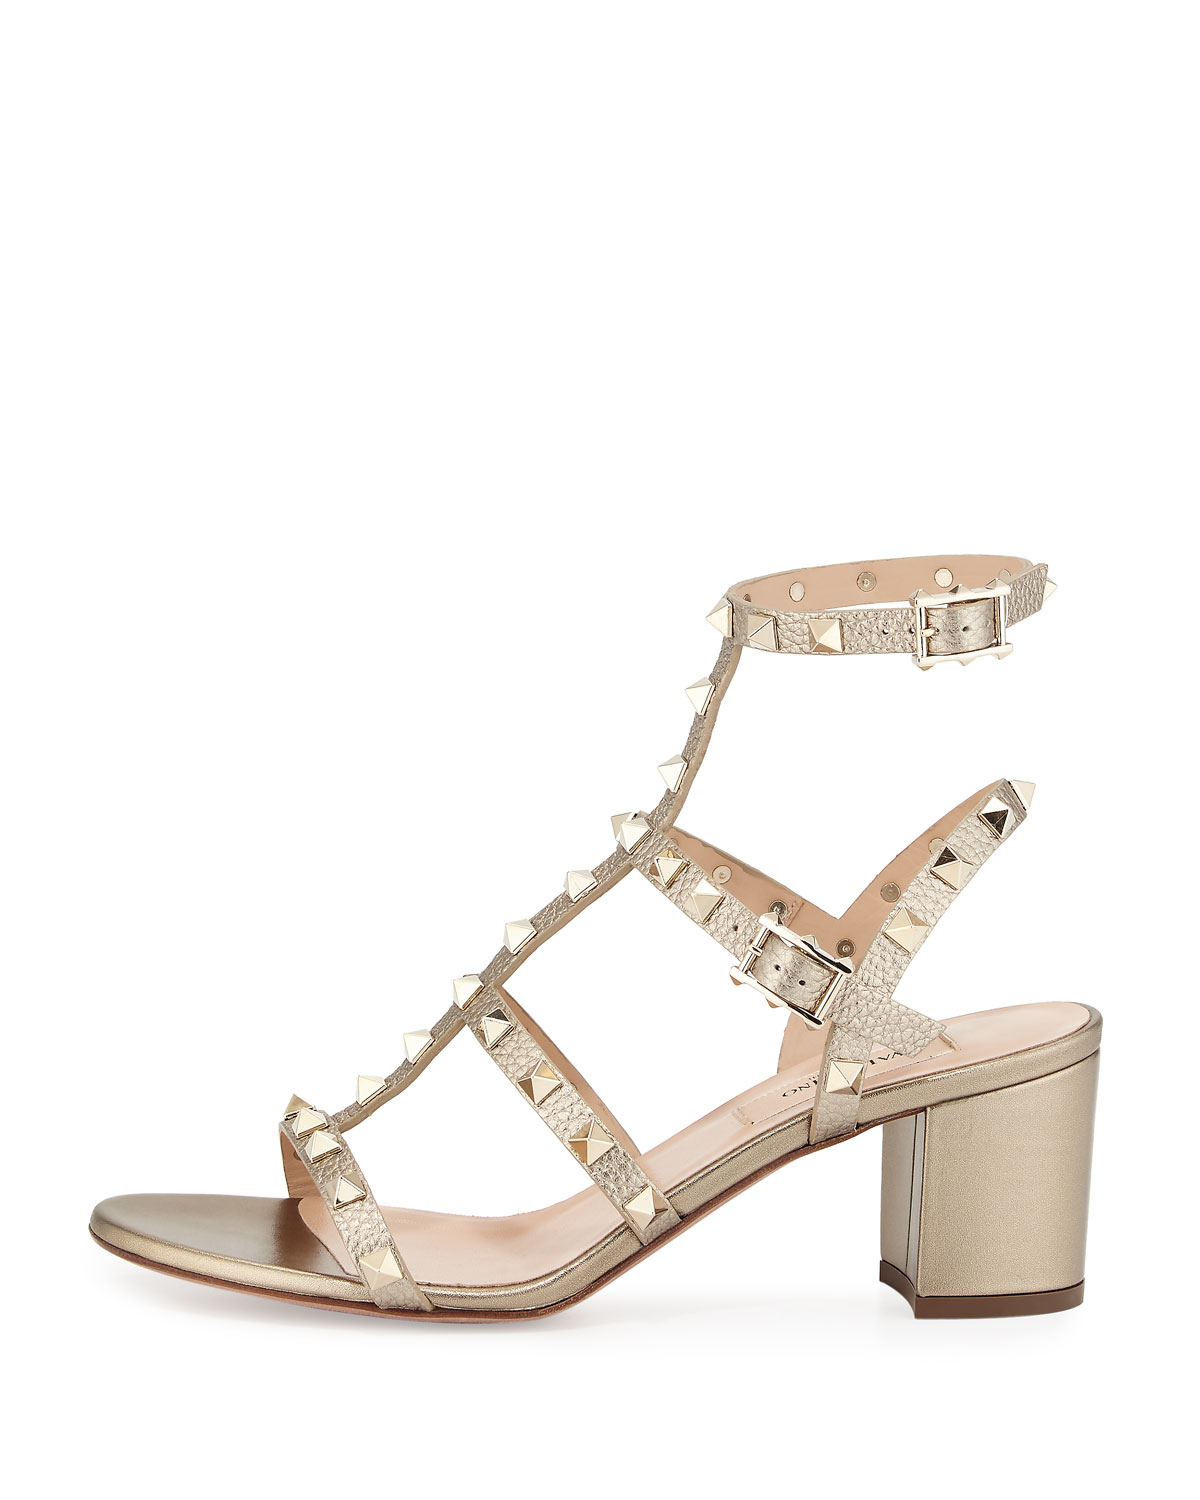 e06c36cb366 Lyst - Valentino Rockstud Leather Sandals in Natural